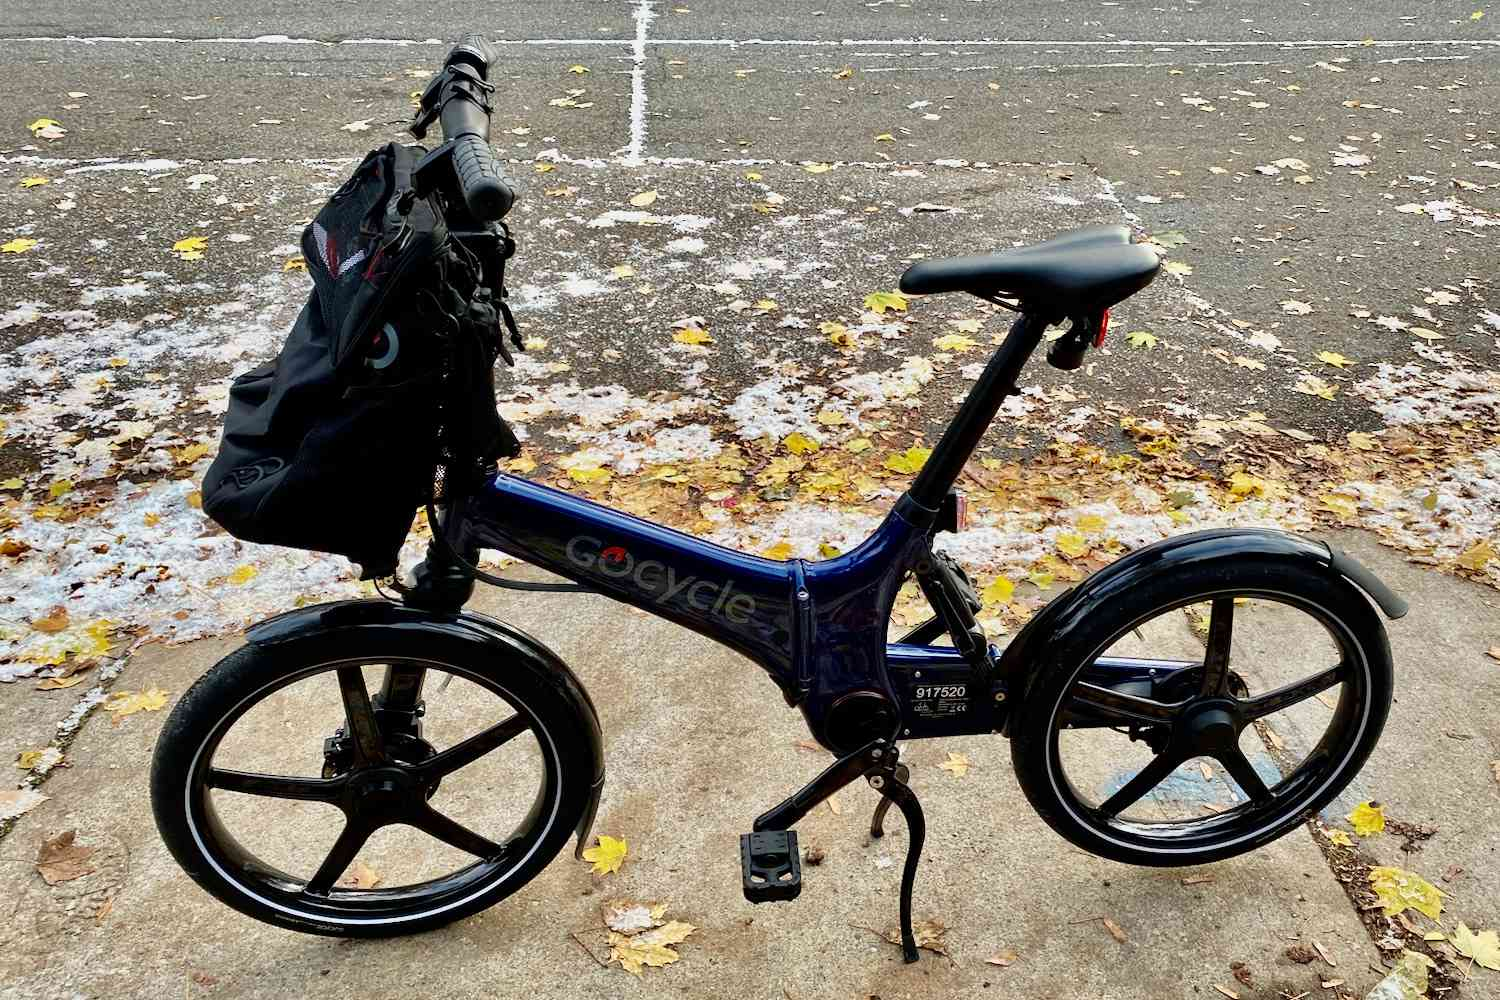 Gocycle ebike in snow